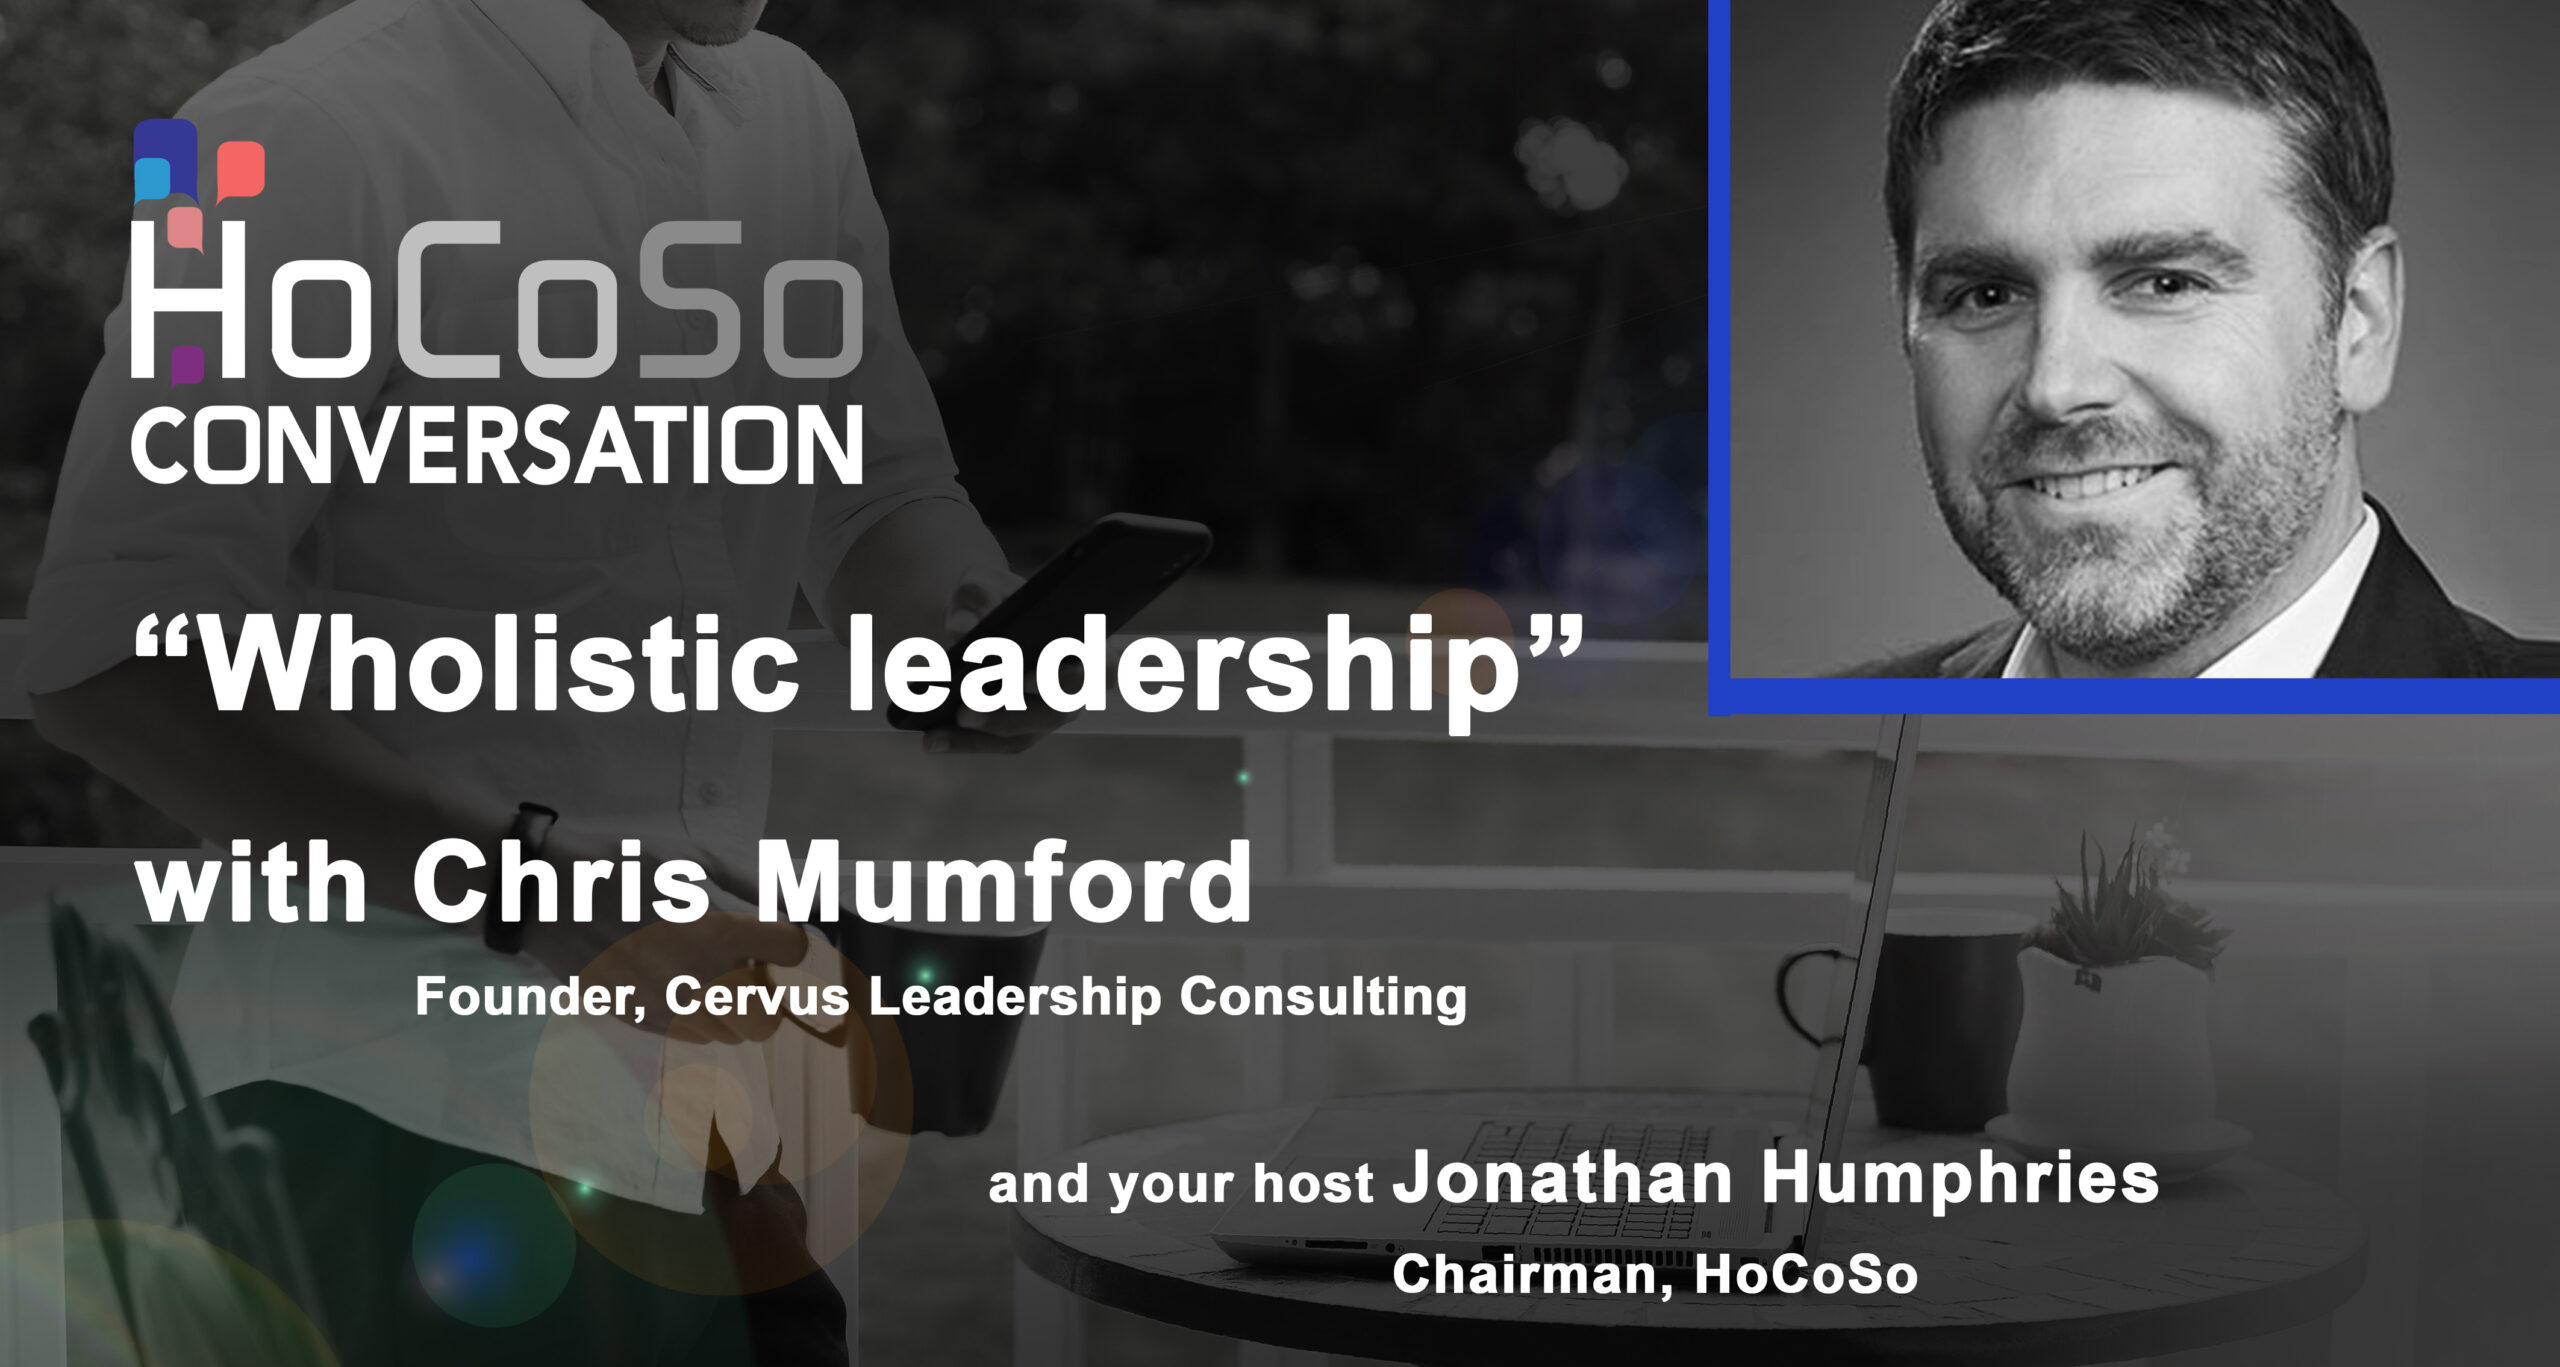 HoCoSo CONVERSATION - with Chris Mumford on wholistic leadership